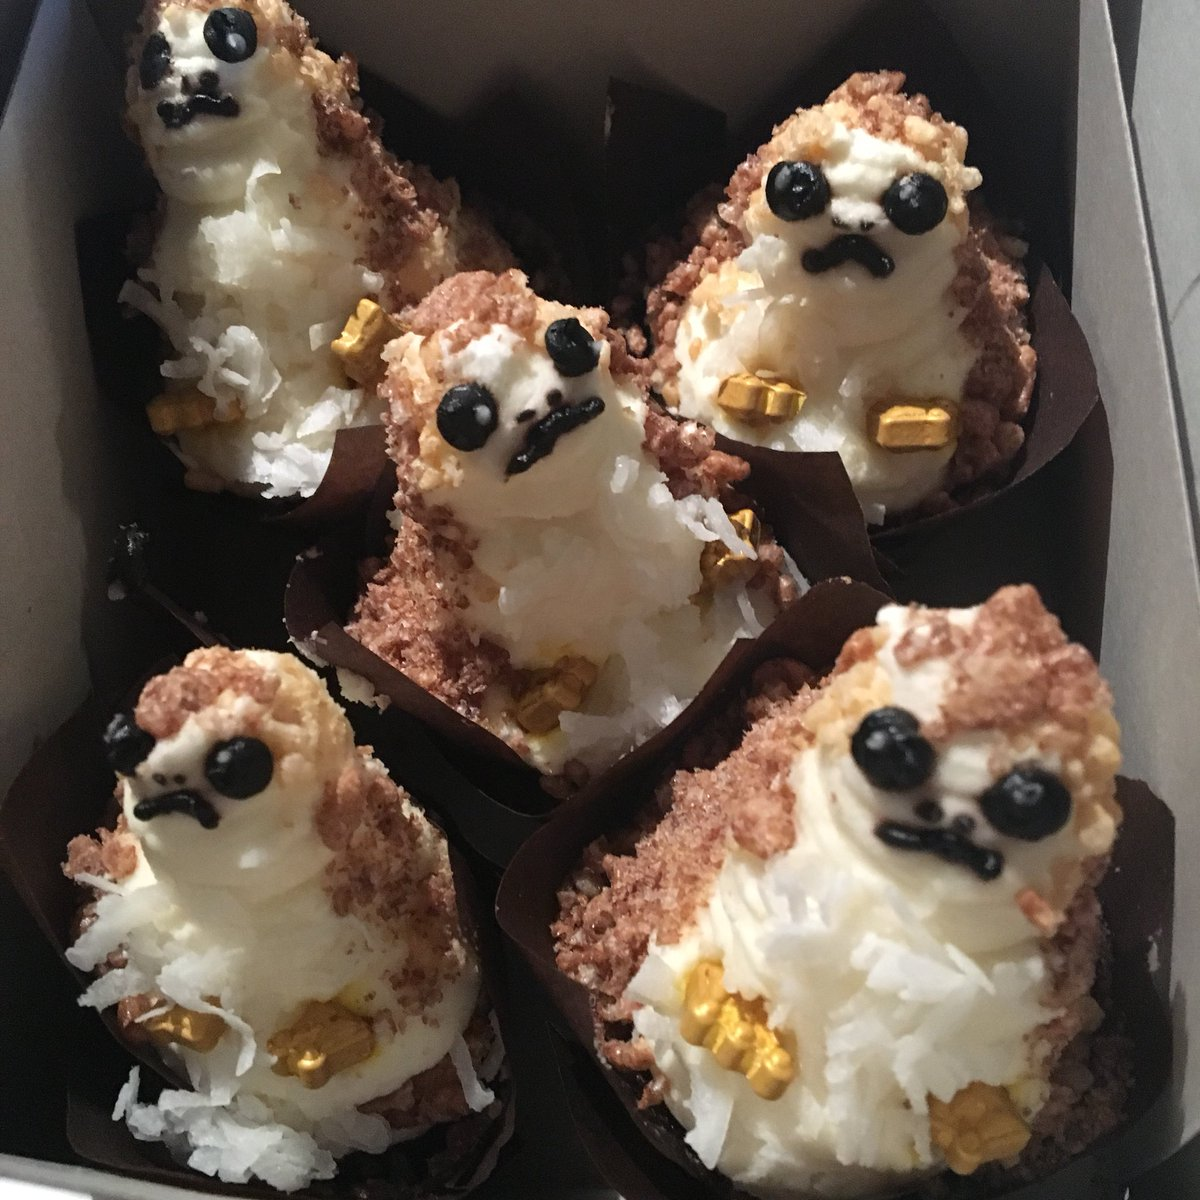 Amy Ratcliffe On Twitter I Ate Some Porgs With Some Pals Today